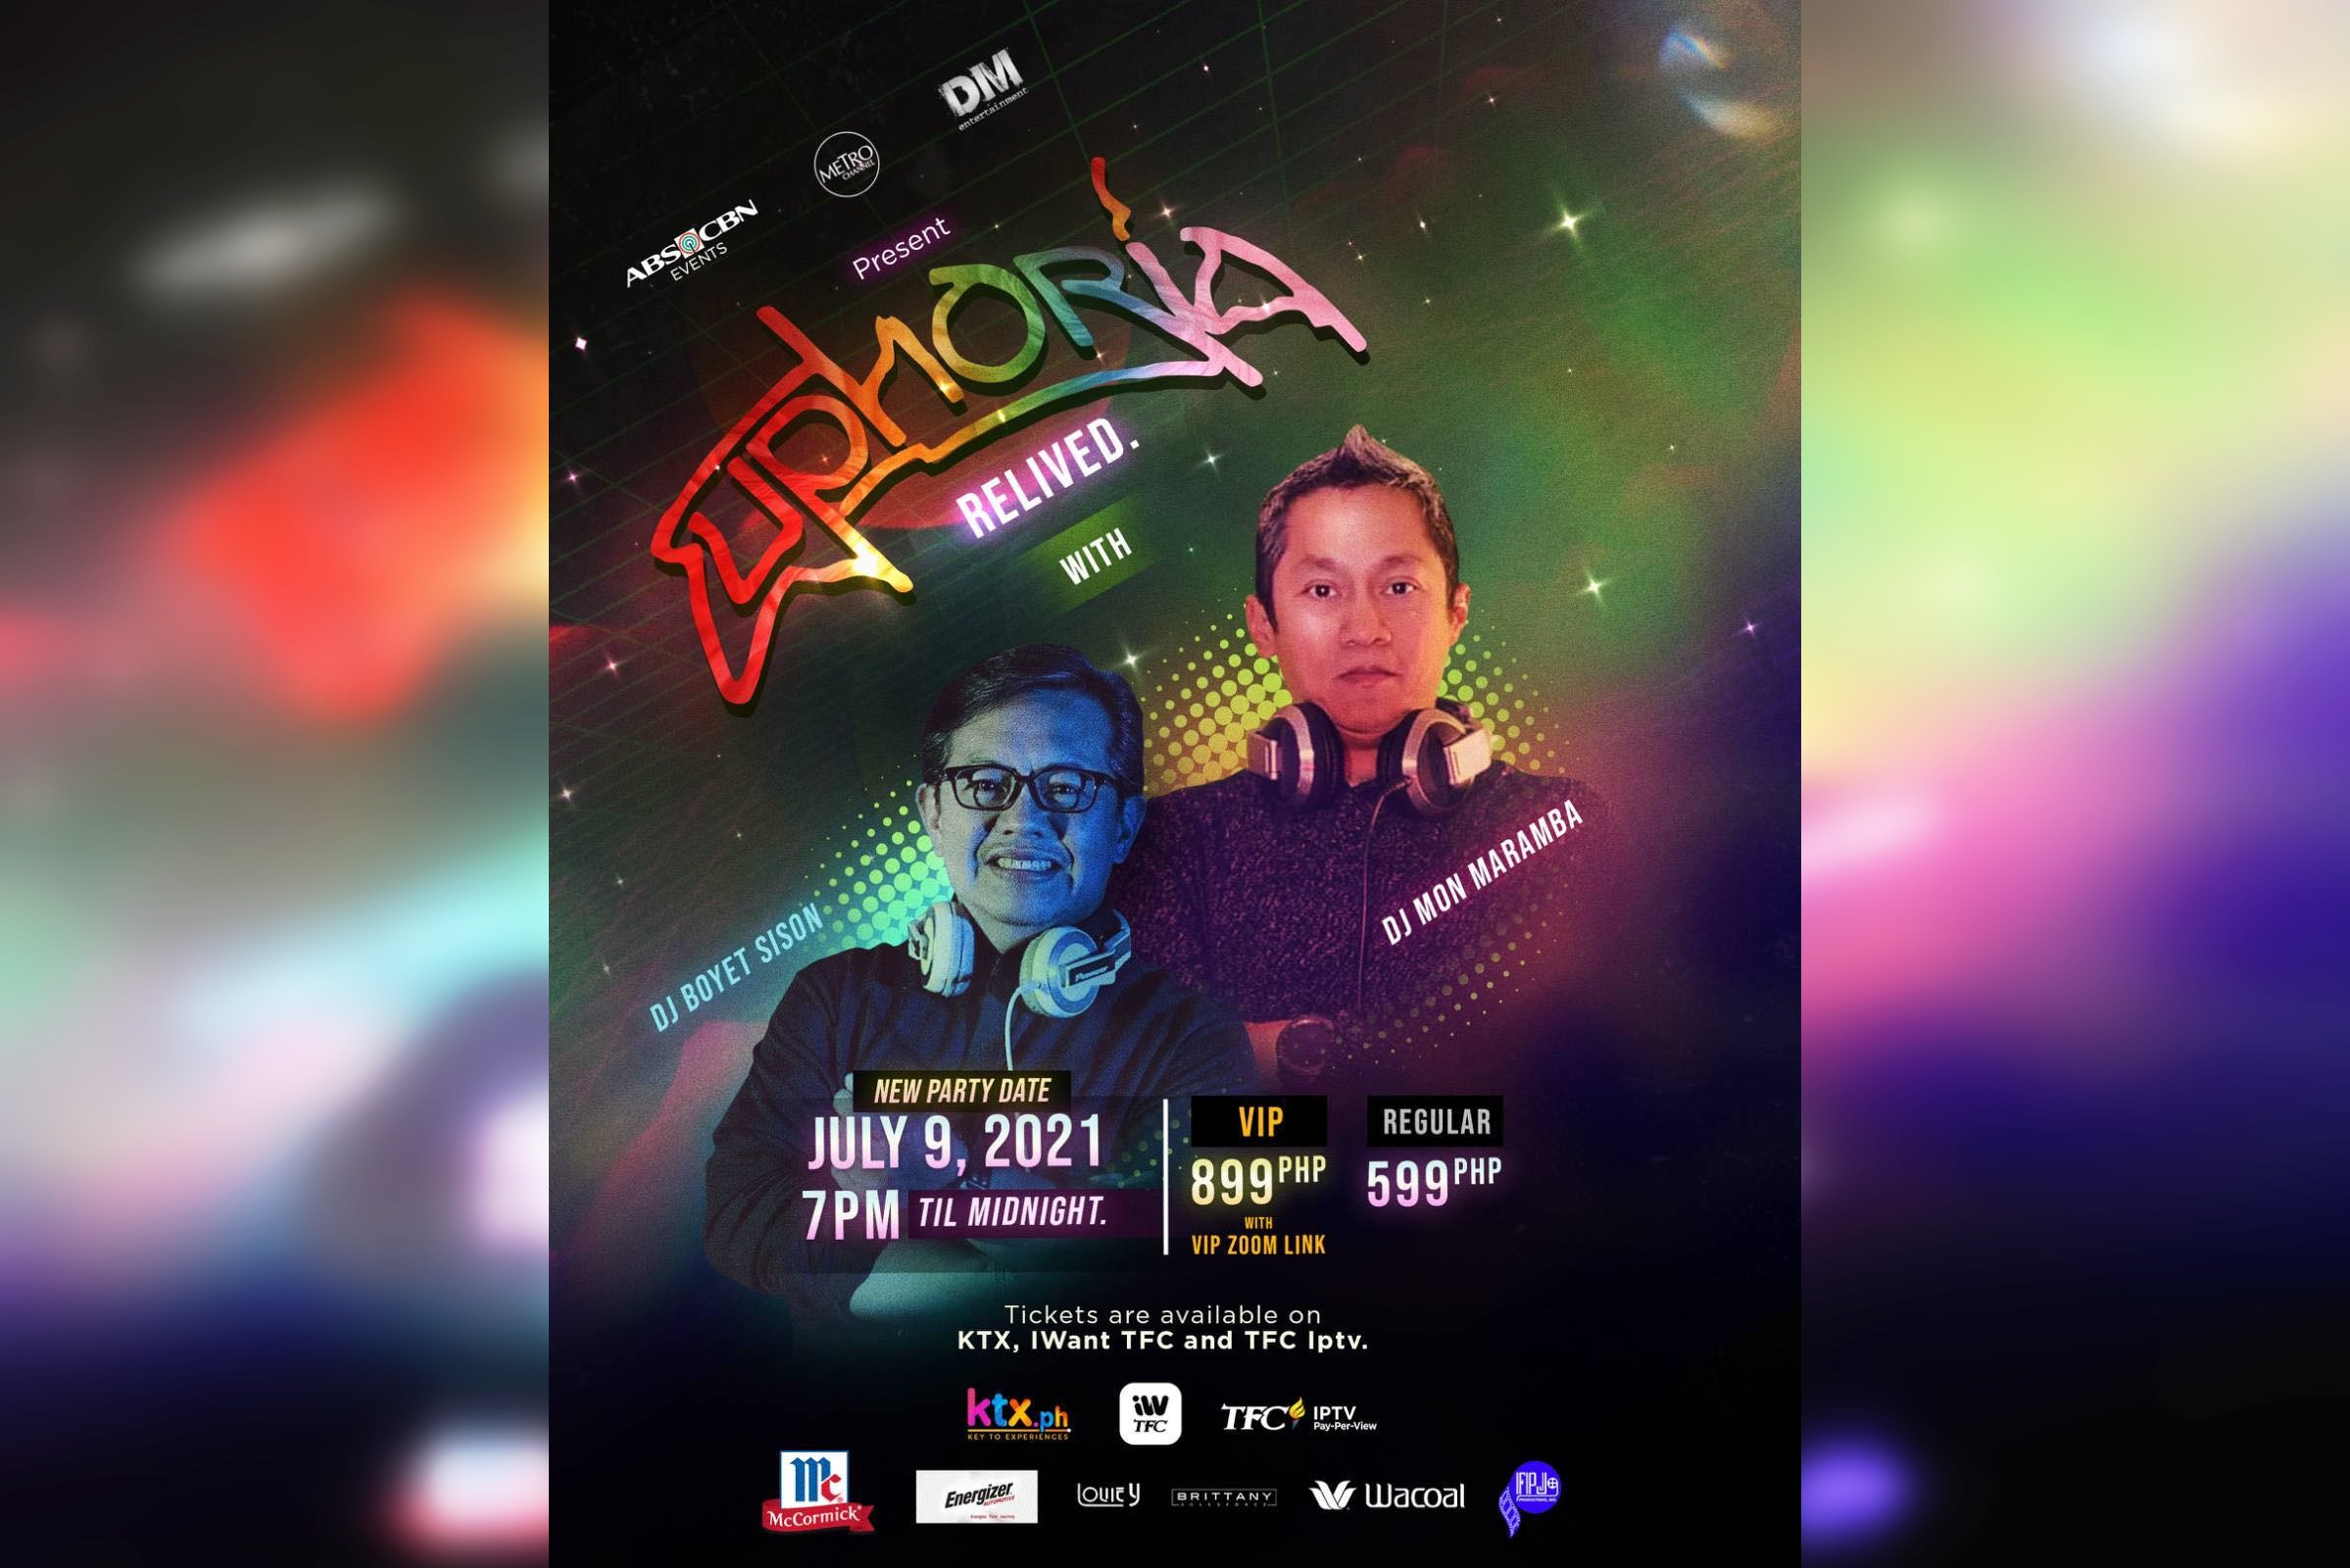 """Throwback disco party """"Euphoria Relived"""" moved to July 9"""